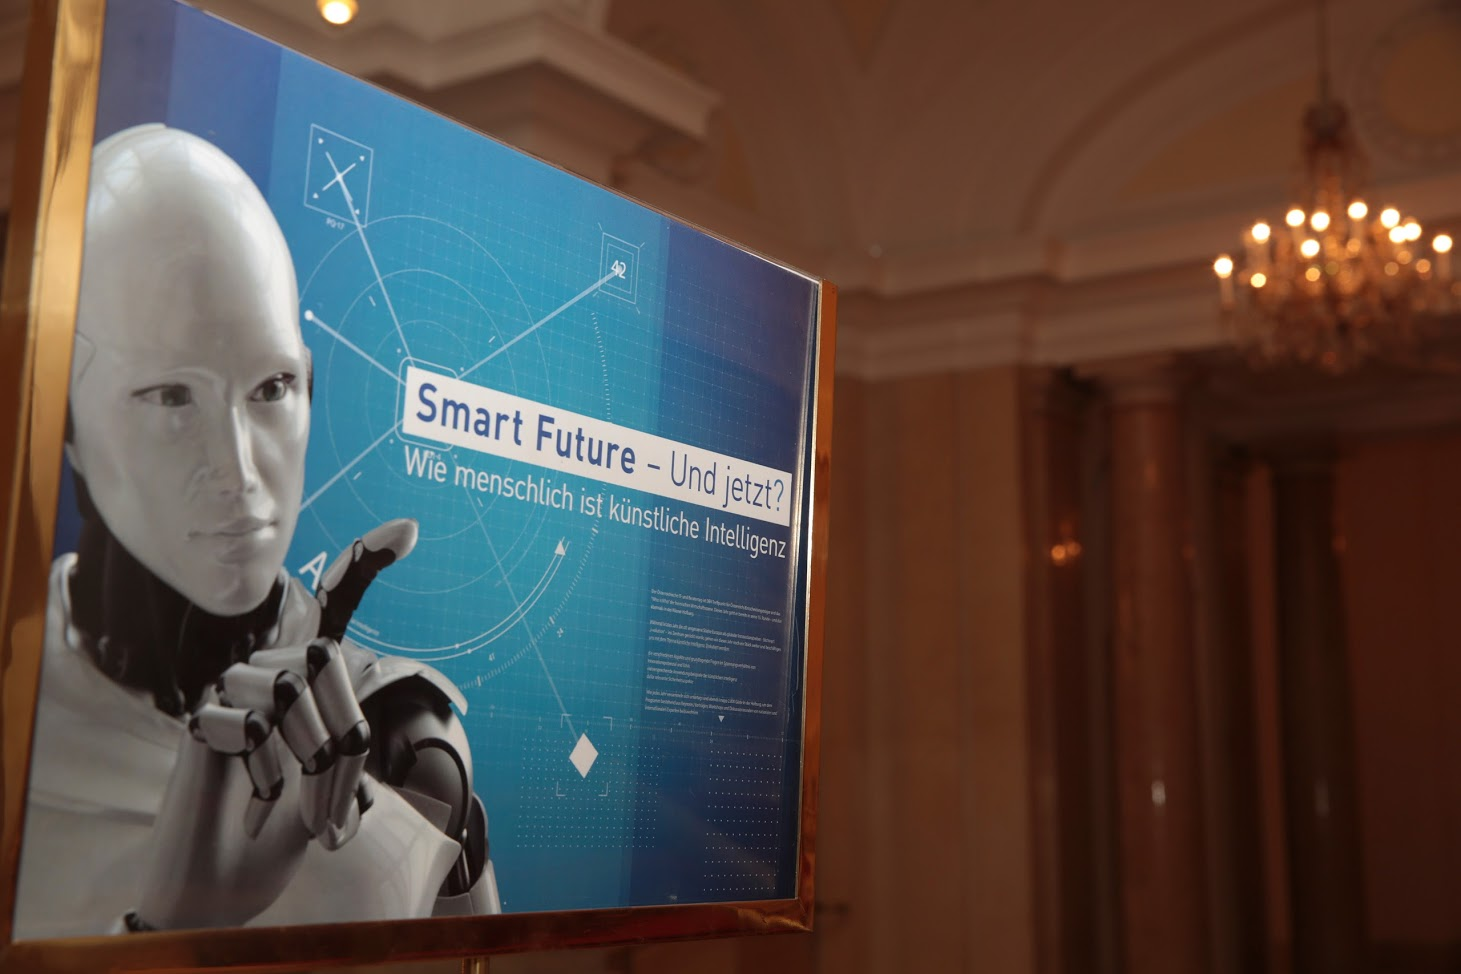 Smart Future, Beratertag in Wien -